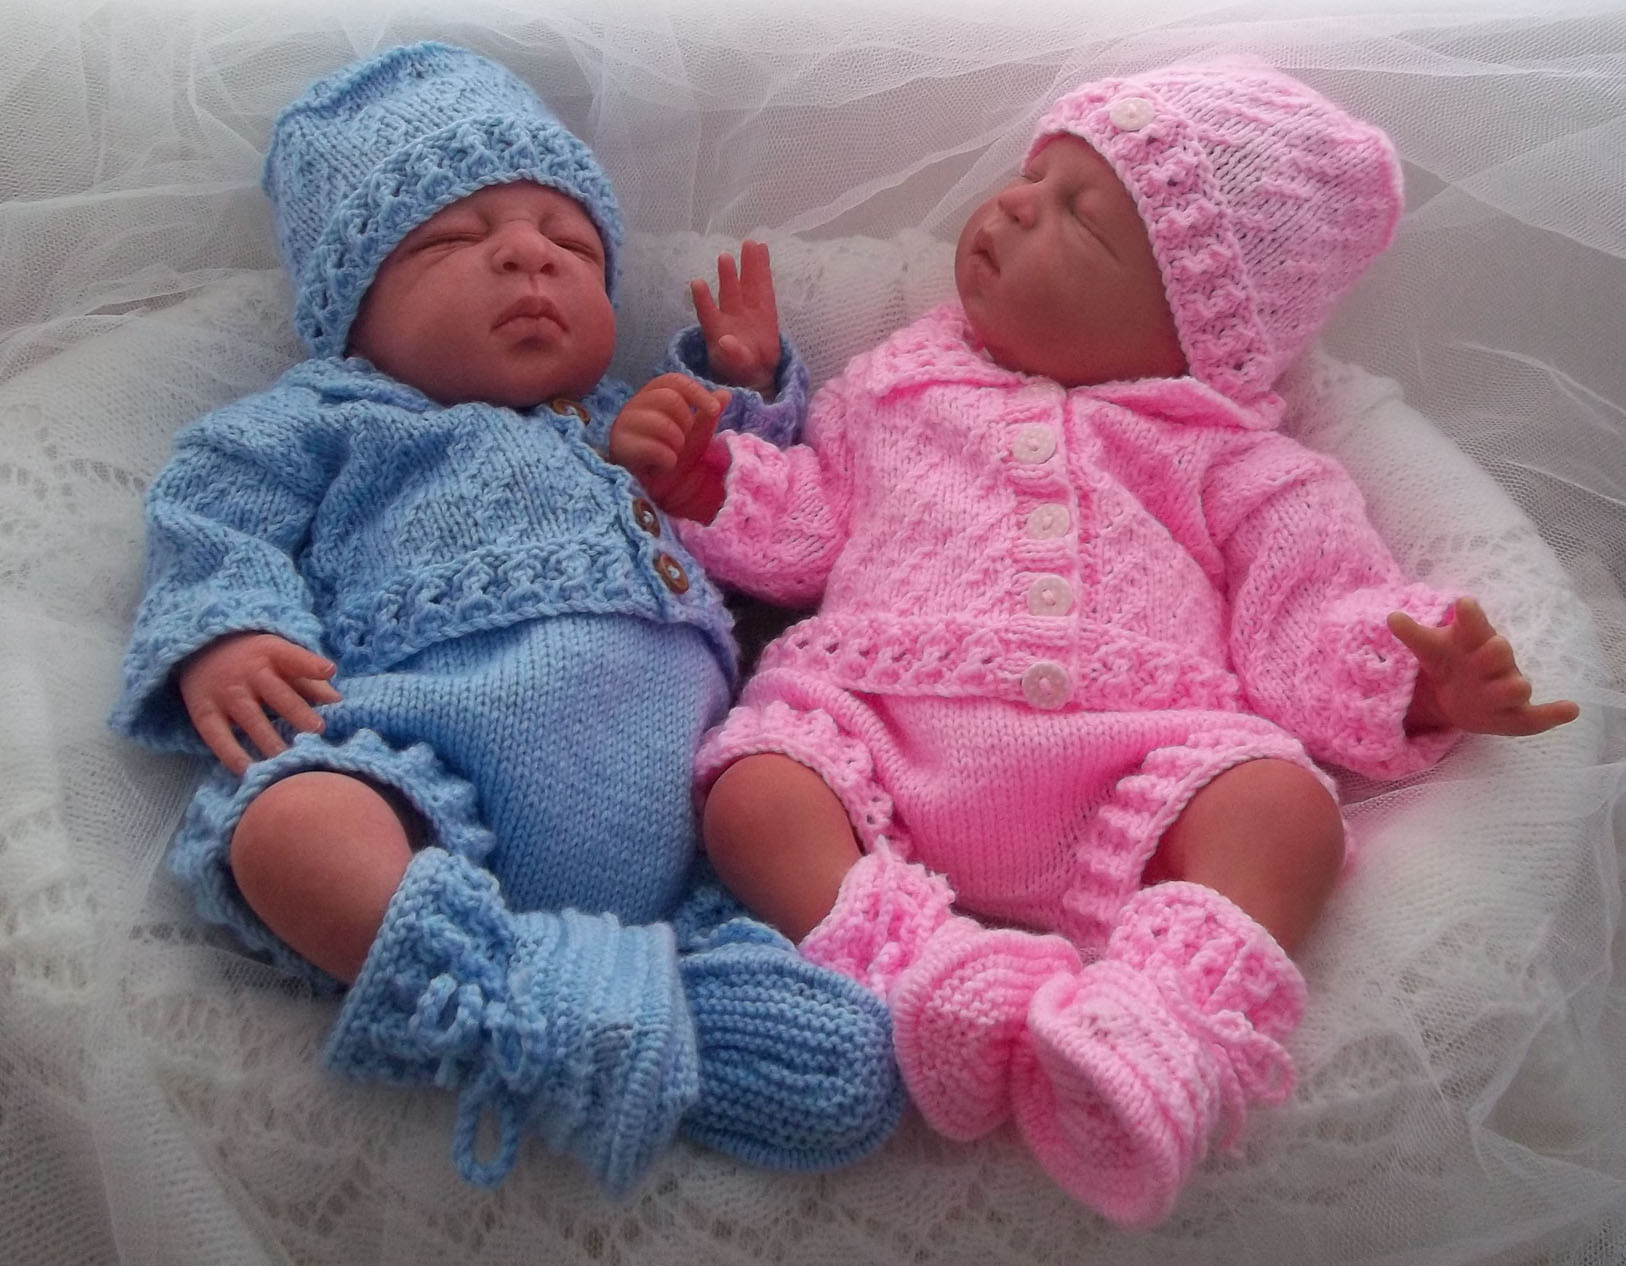 Knitting Patterns Uk size: 0-3 months or a 20-22 njcbvqp